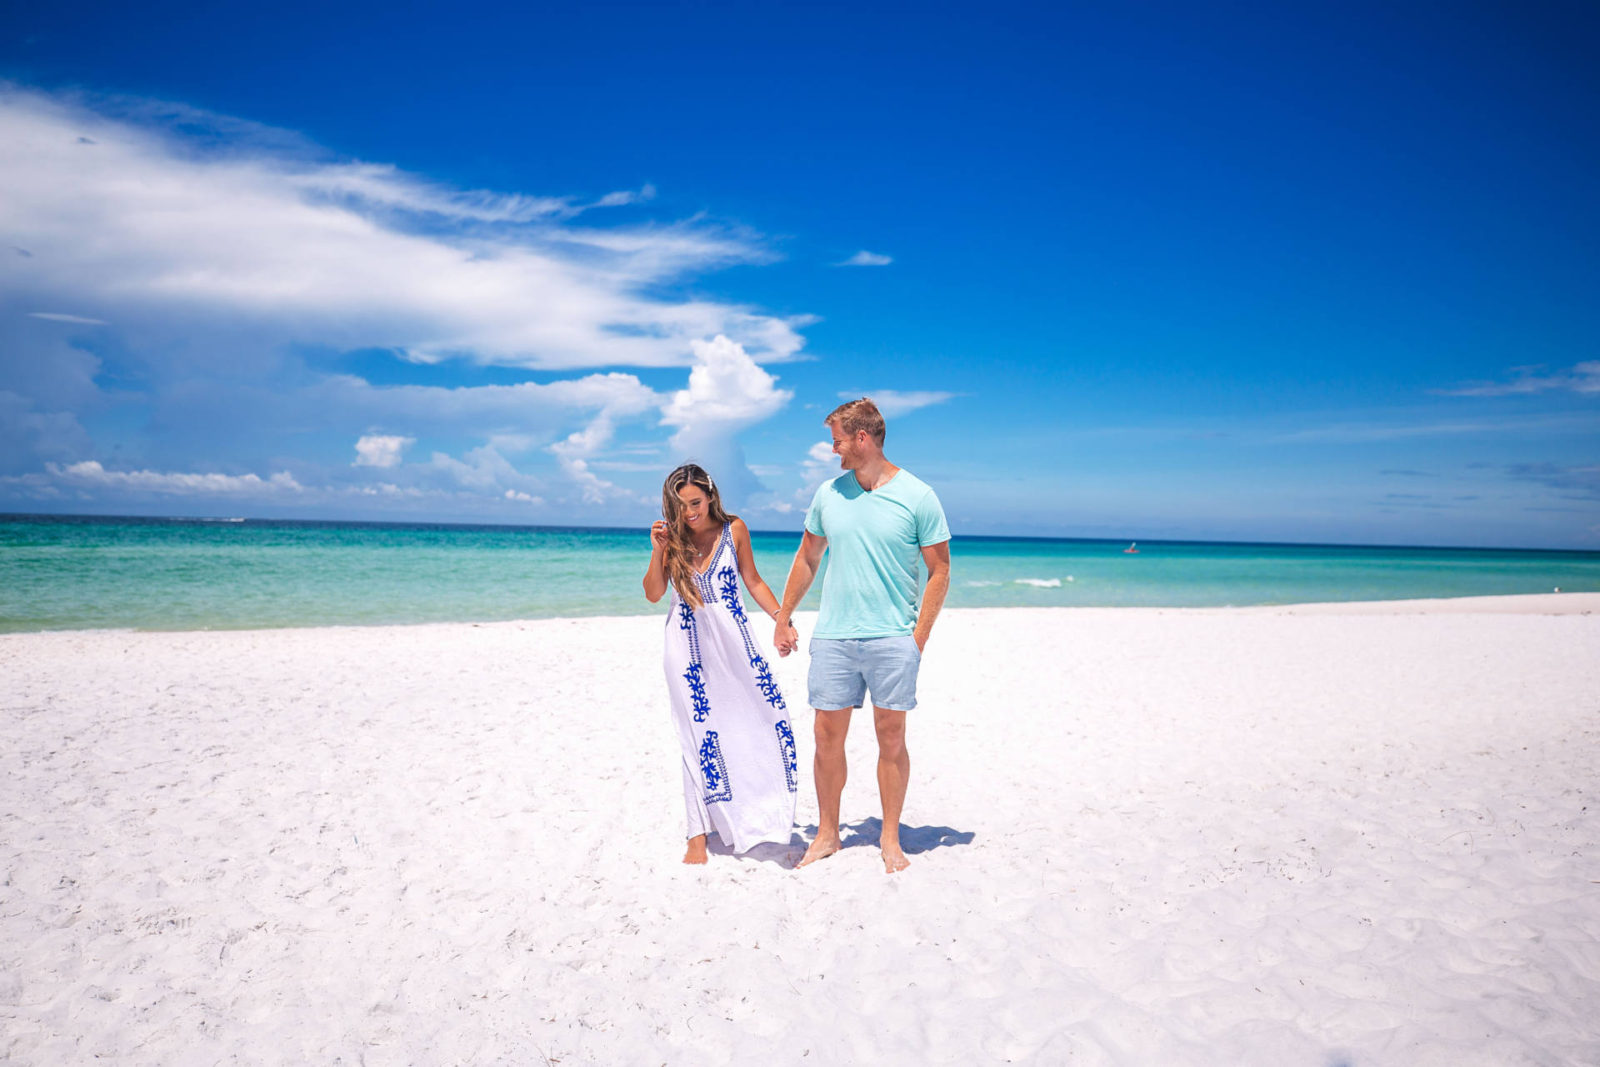 jasmine elias boswell and david boswell, husband and wife on the beach in panama city beach, florida